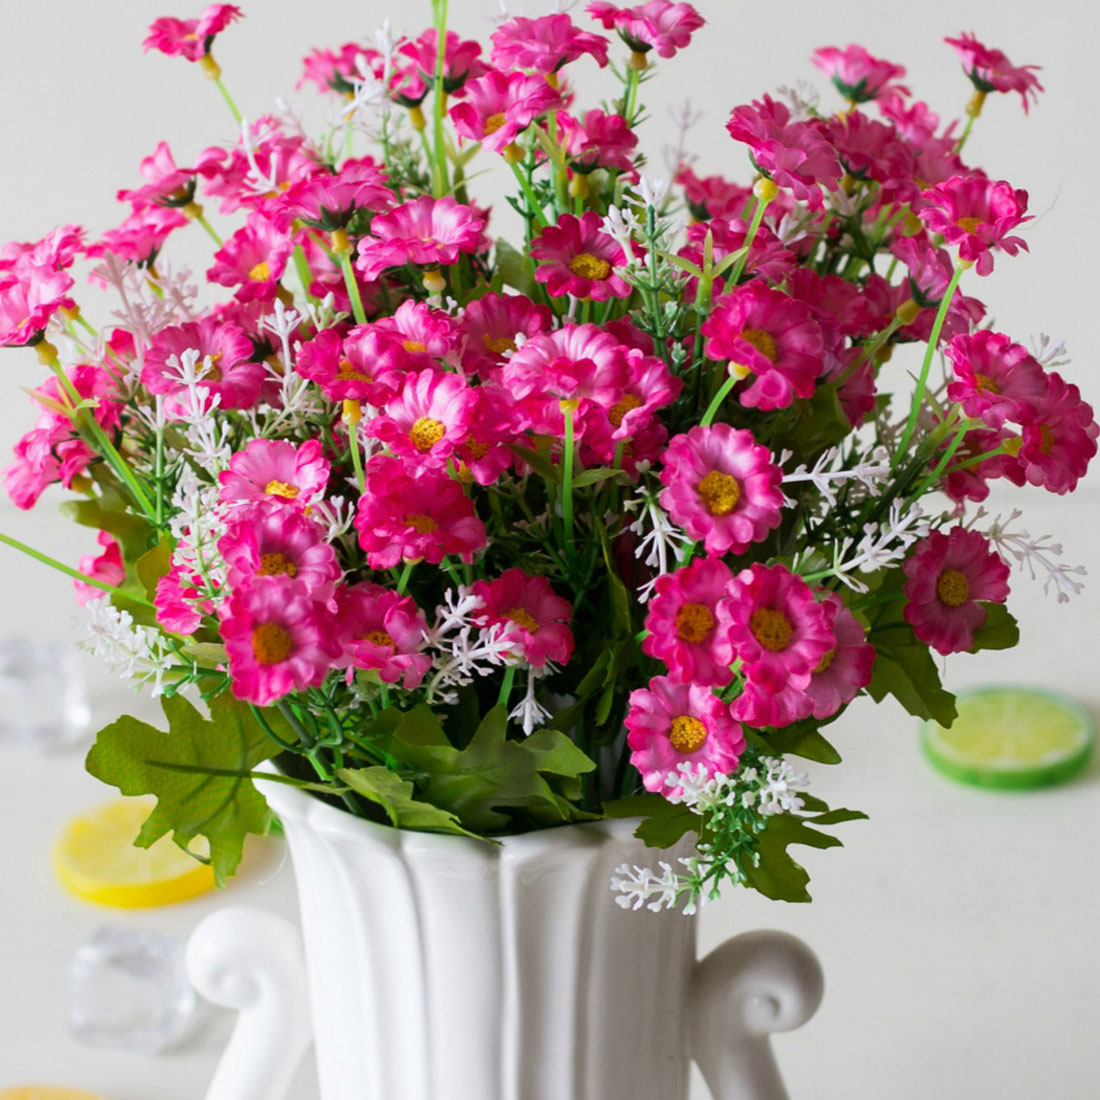 Buy Daisy Gerberas And Get Free Shipping On Aliexpress